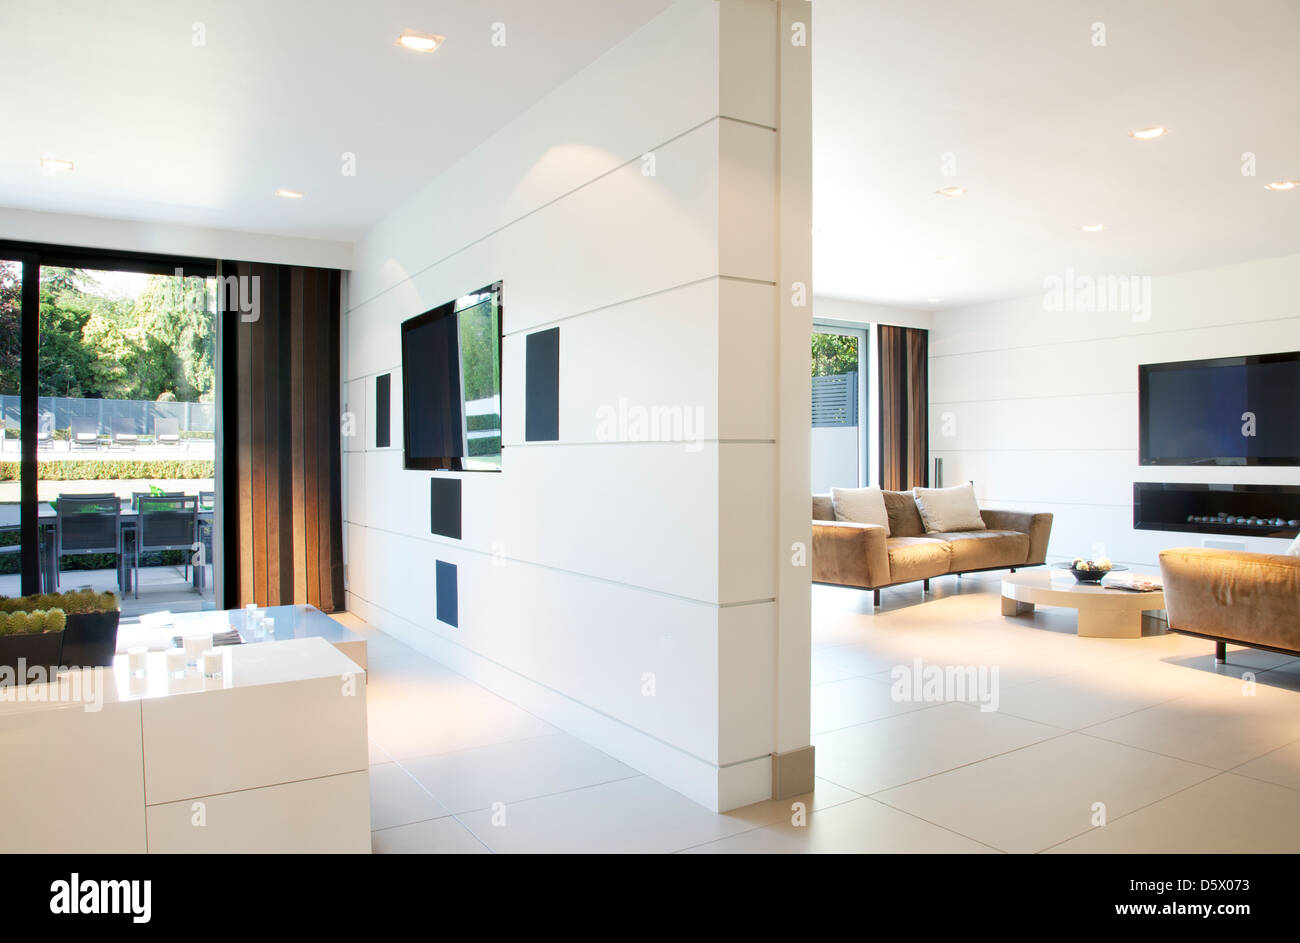 Divider wall of modern home - Stock Image